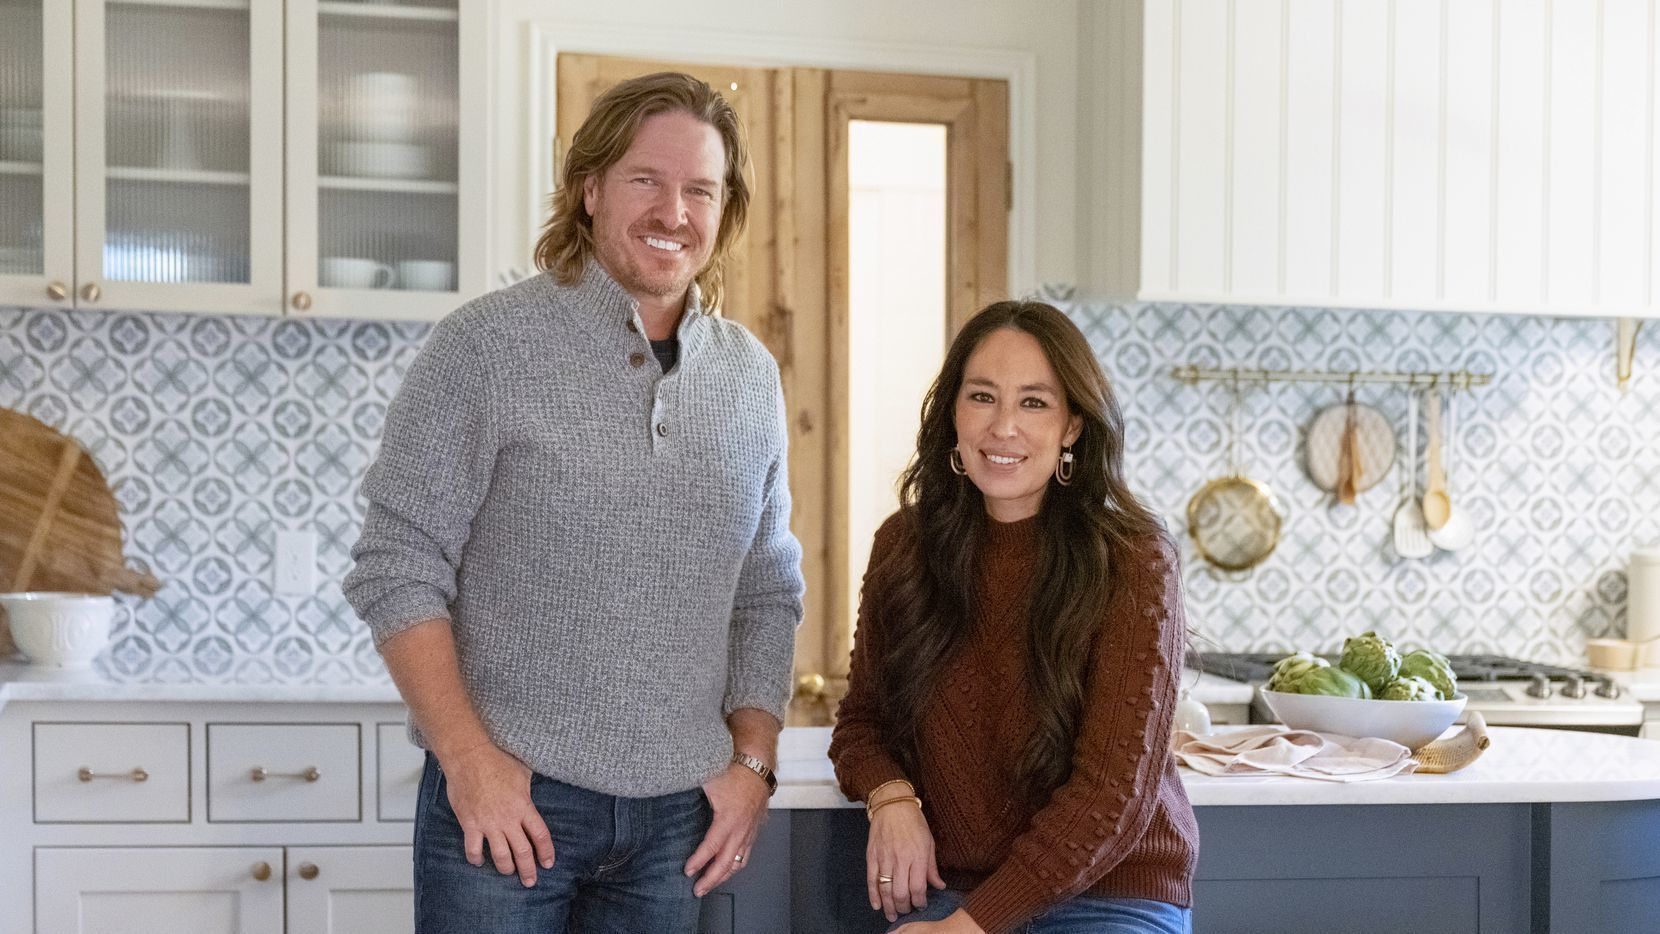 Chip and Joanna Gaines of 'Fixer Upper' have a relative running for Grapevine-Colleyville ISD school board